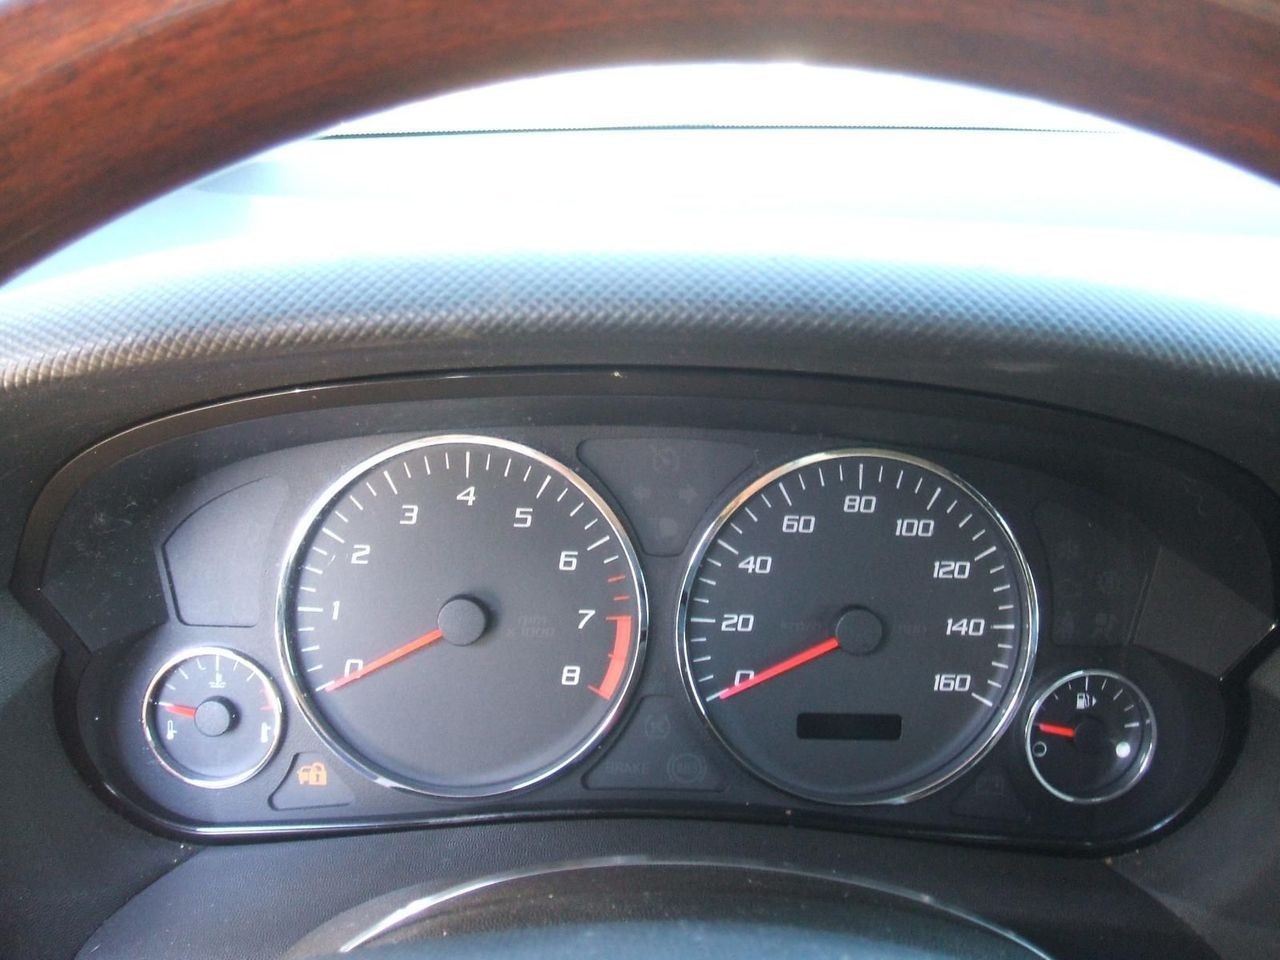 Cadillac Cts Speedometer Instrument Cluster Repair Service